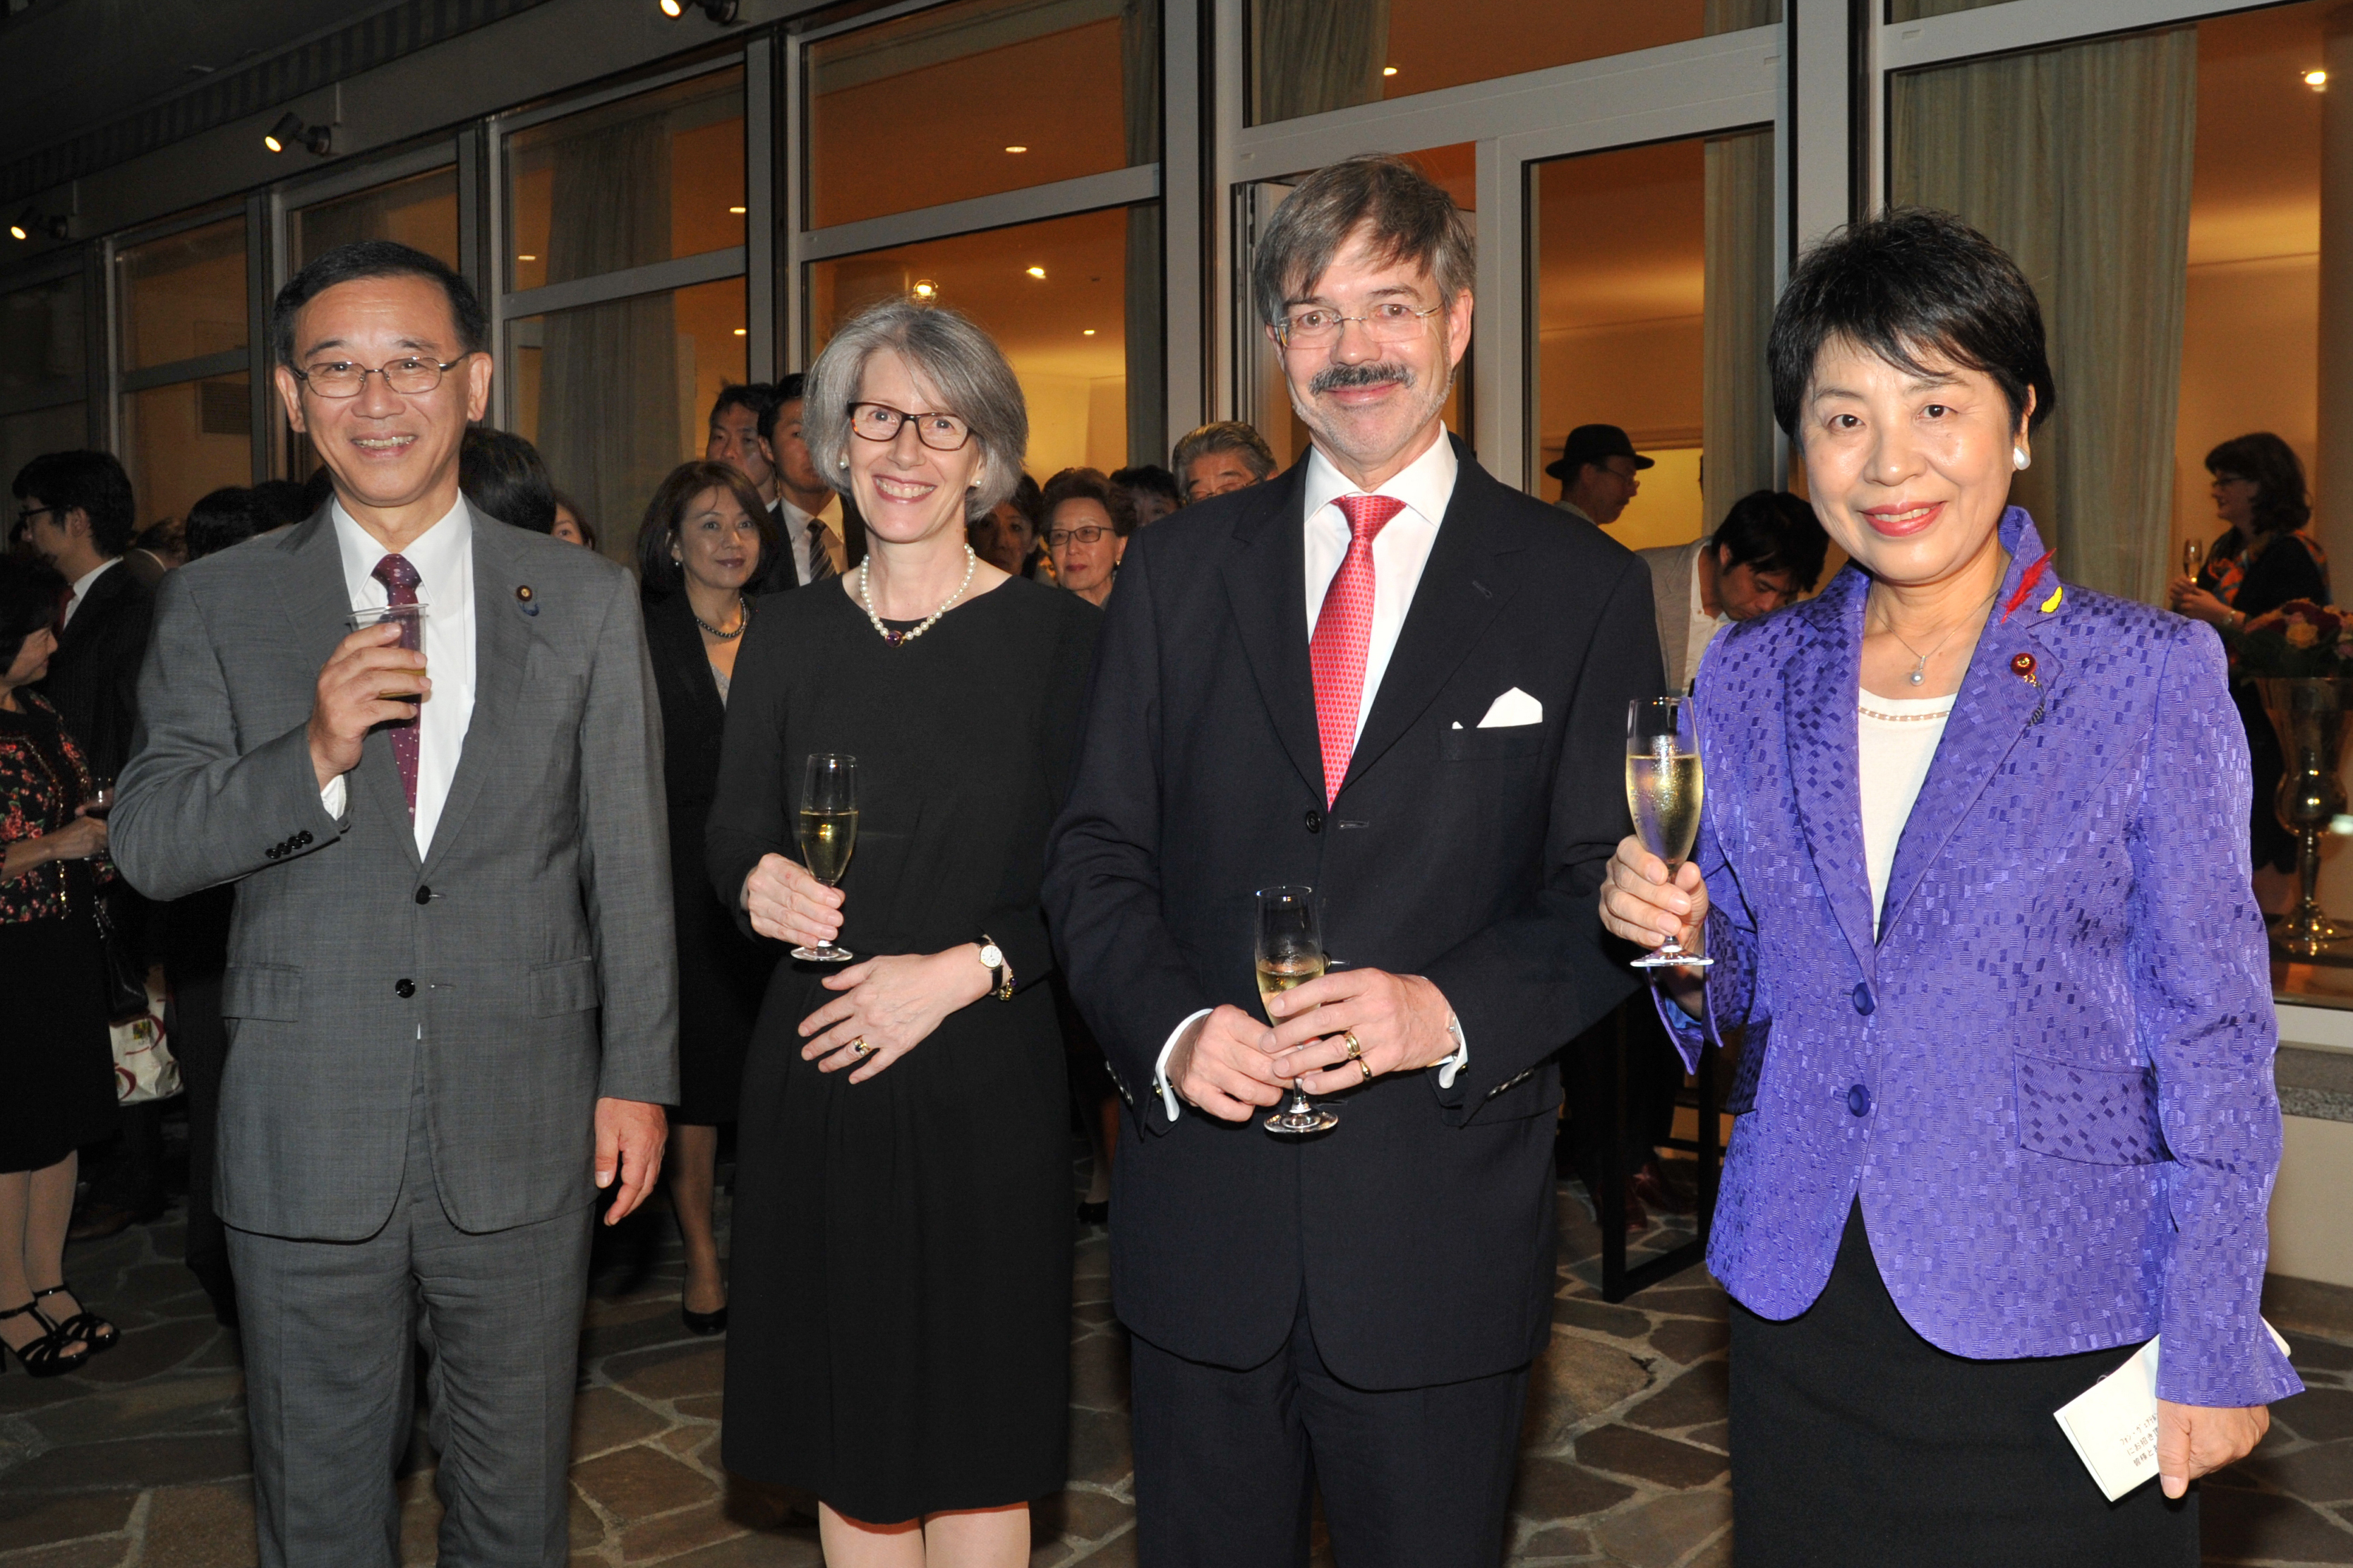 German Ambassador Hans Carl von Werthern (second from right), and his wife, Elizabeth (second from left), join Secretary-General of the Liberal Democratic Party and former Justice Minister Sadakazu Tanigaki (left) and former Justice Minister Yoko Kamikawa (right), during a reception to celebrate the Day of German Unity at the ambassador's residence in Tokyo on Oct. 2. | YOSHIAKI MIURA